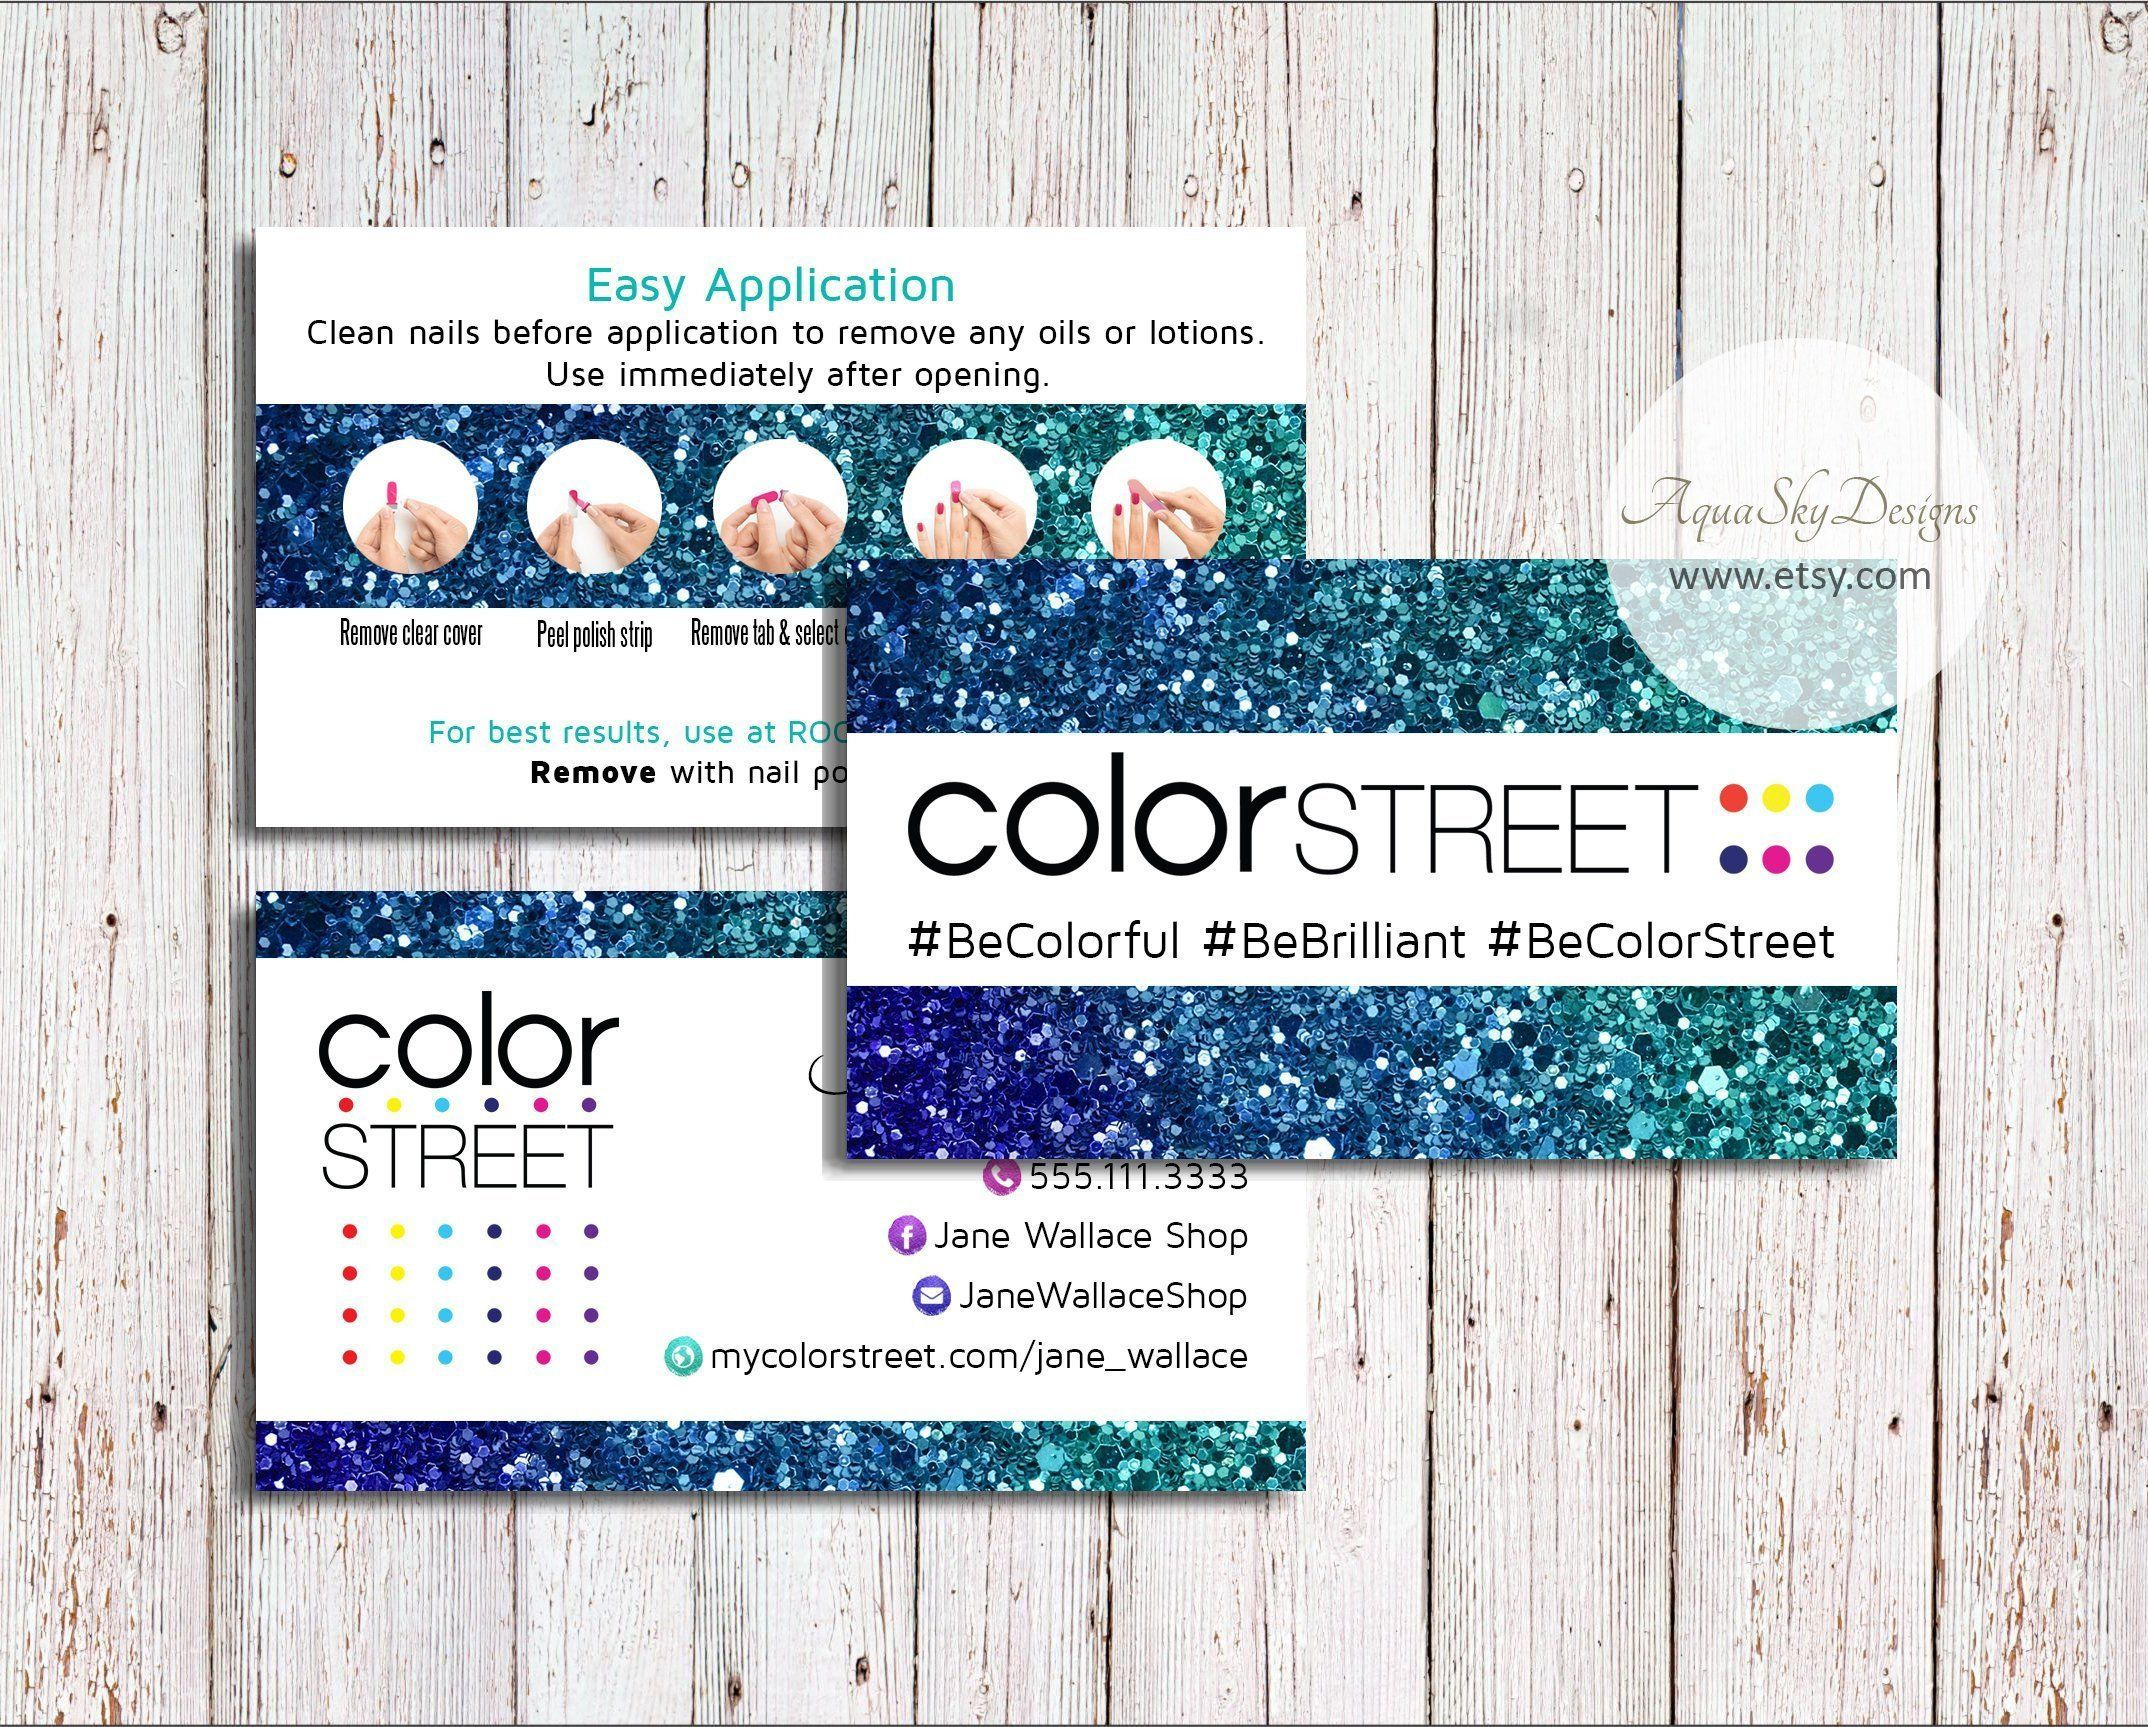 Color Street Business Cards Color Street Download Custom Colorstreet Business C Colorful Business Card Business Card Design Inspiration Printing Business Cards